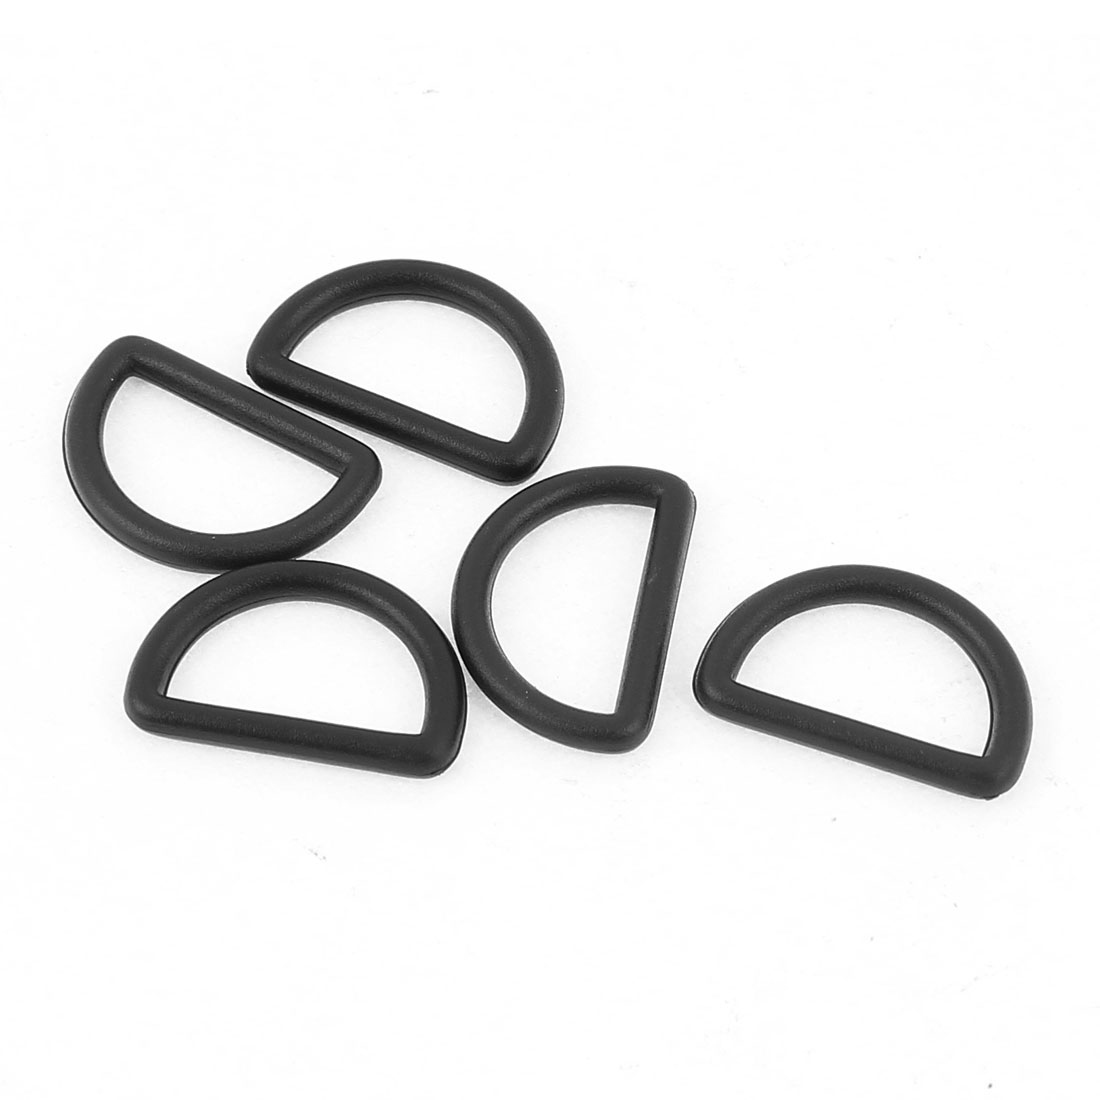 5 Pcs 19mm Width Black Plastic Backpack Belt D Ring Hooks D Shaped Buckle